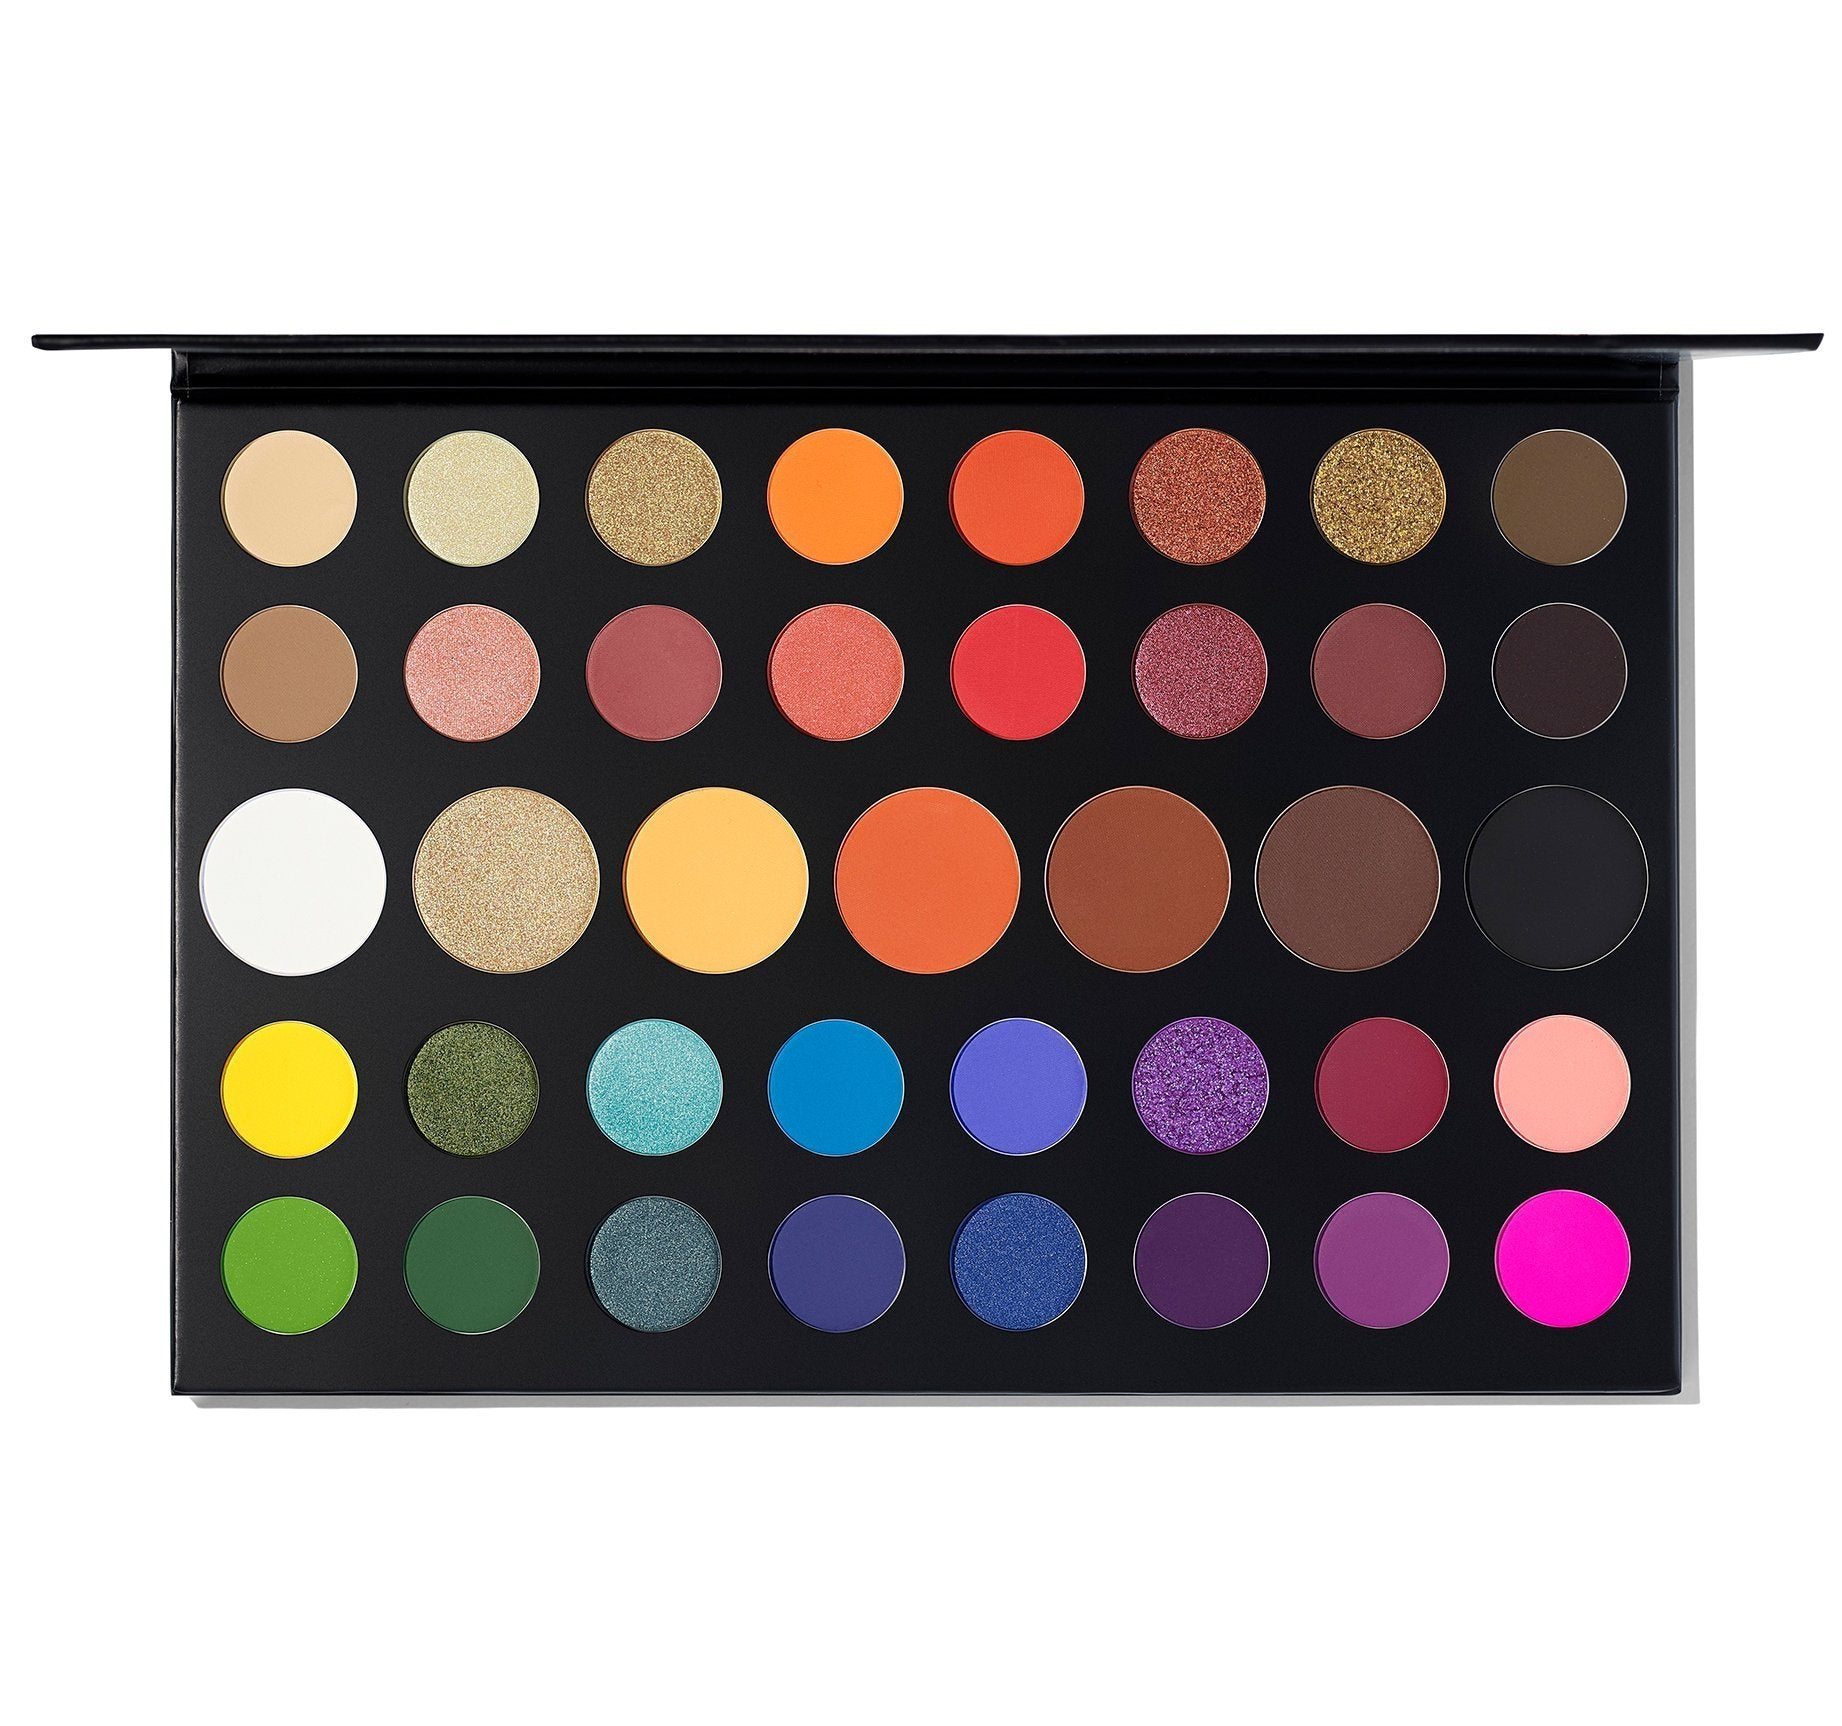 THE JAMES CHARLES PALETTE, view larger image